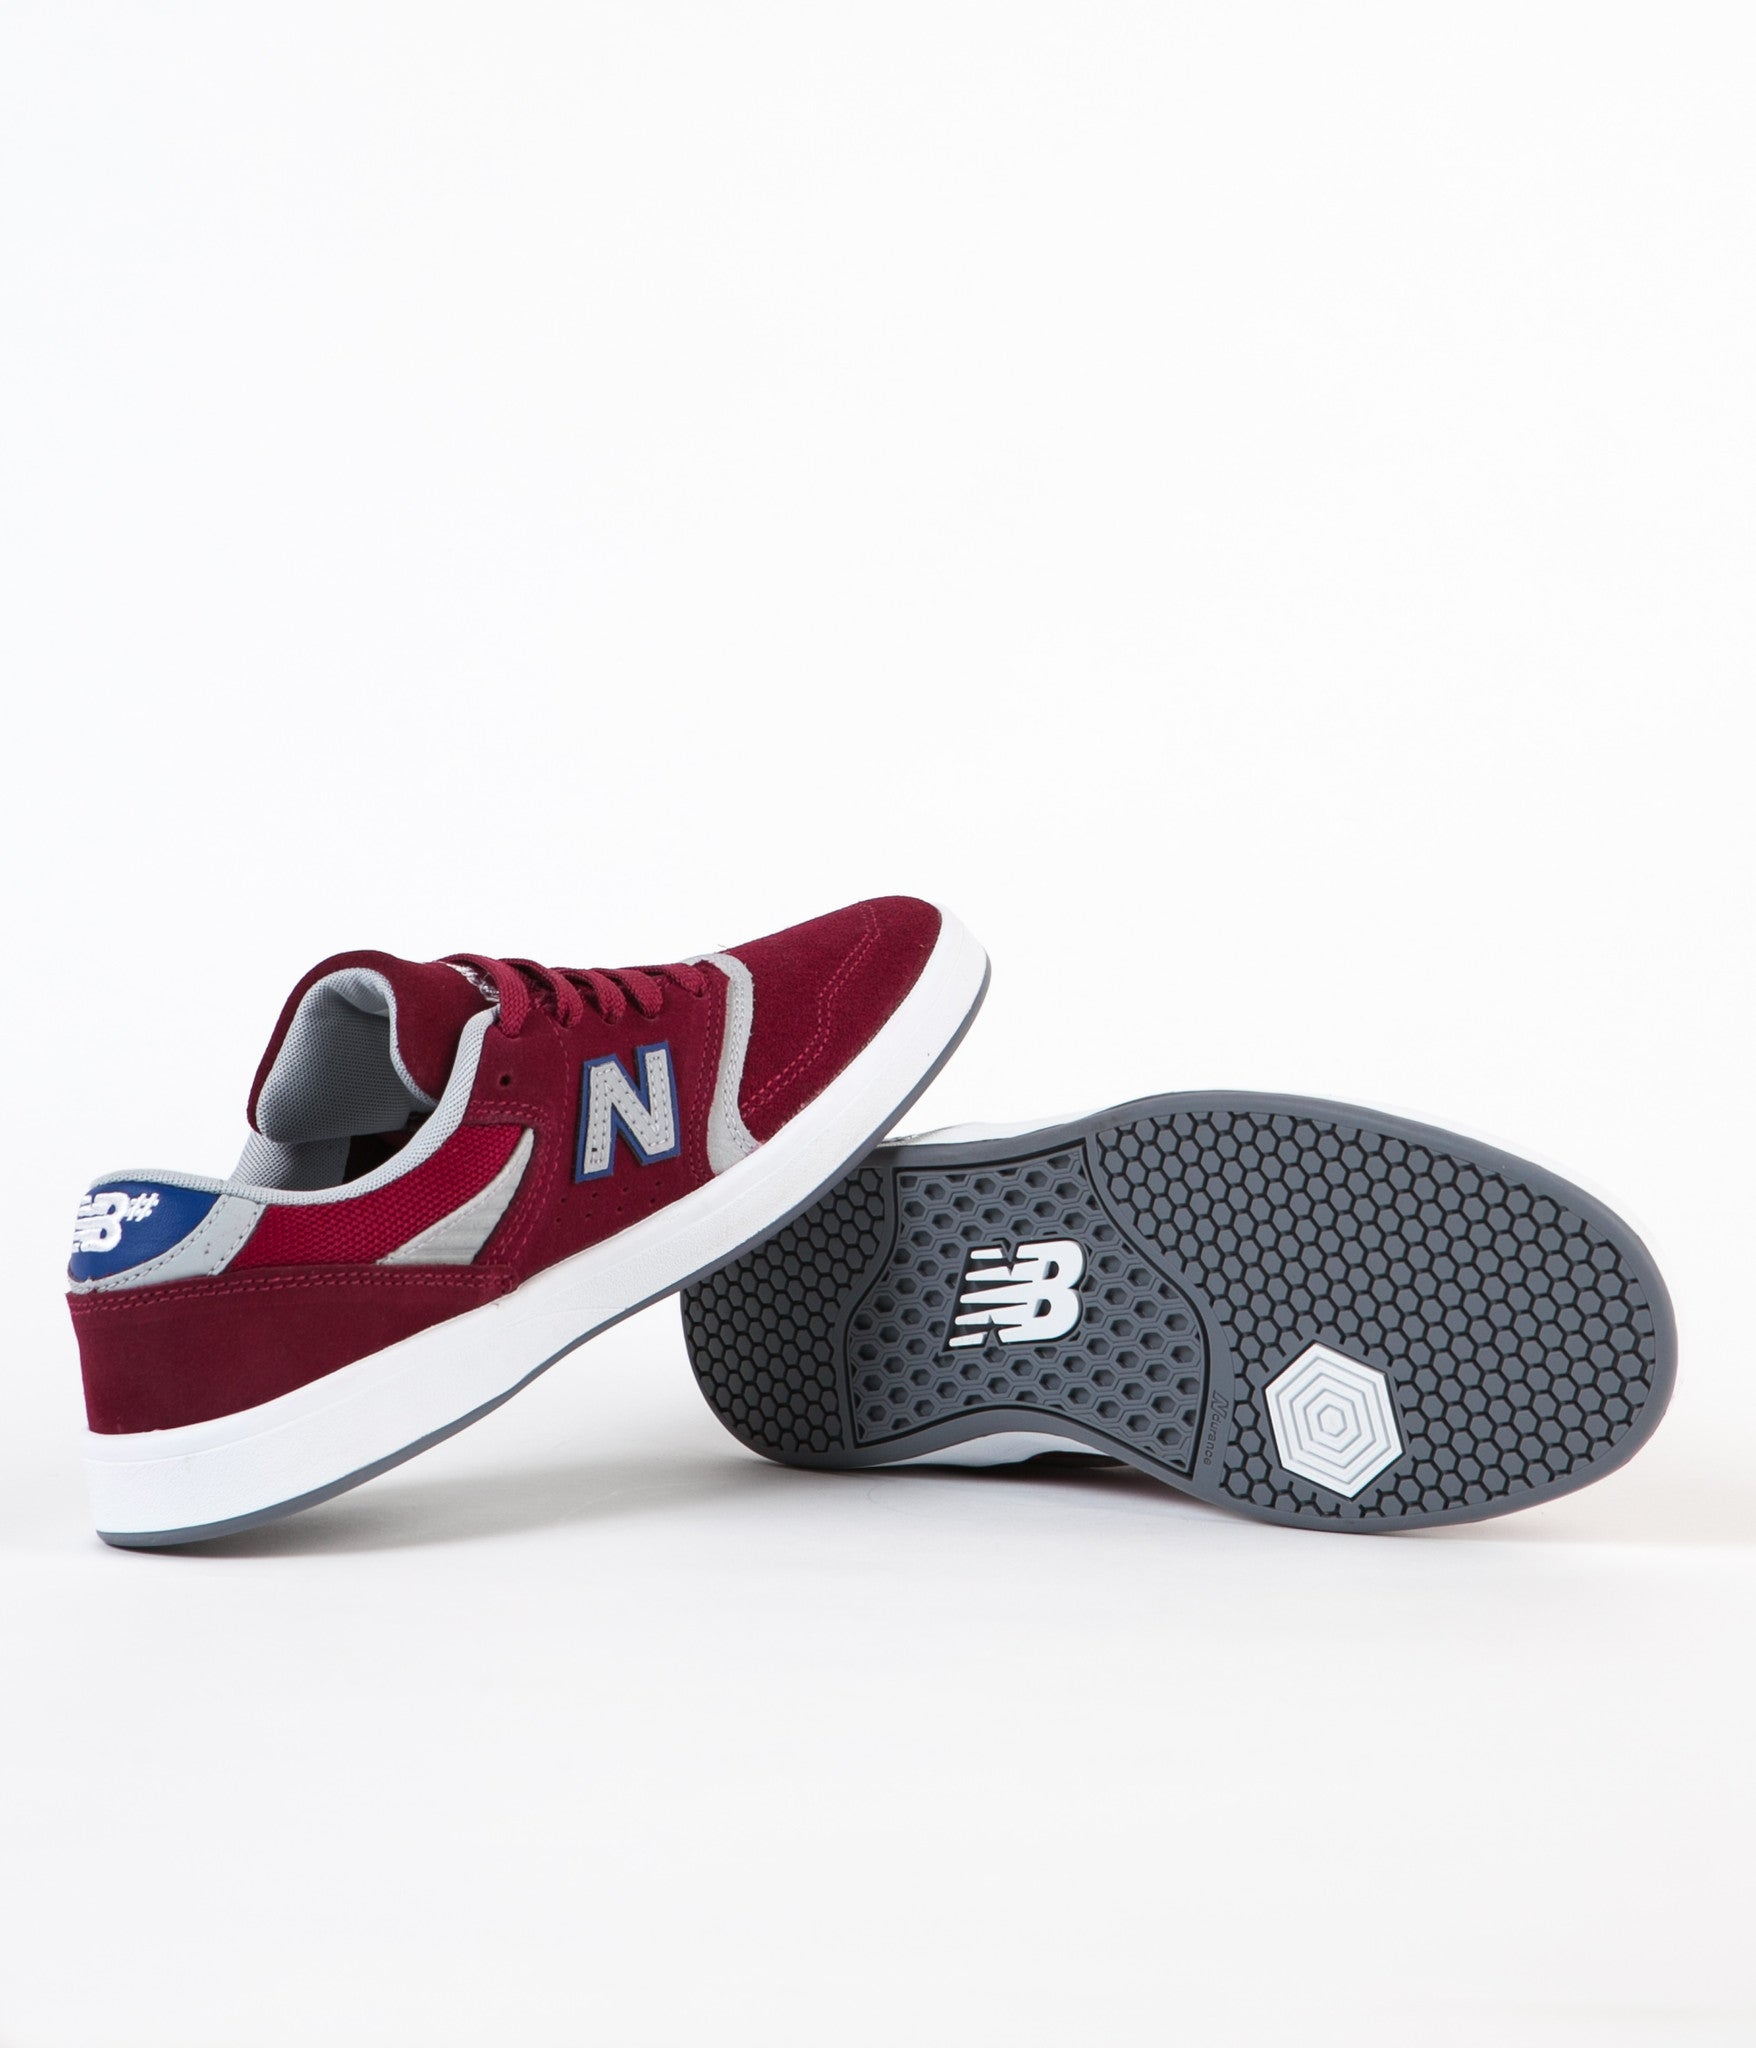 New Balance Numeric 598 Shoes - Red / Grey